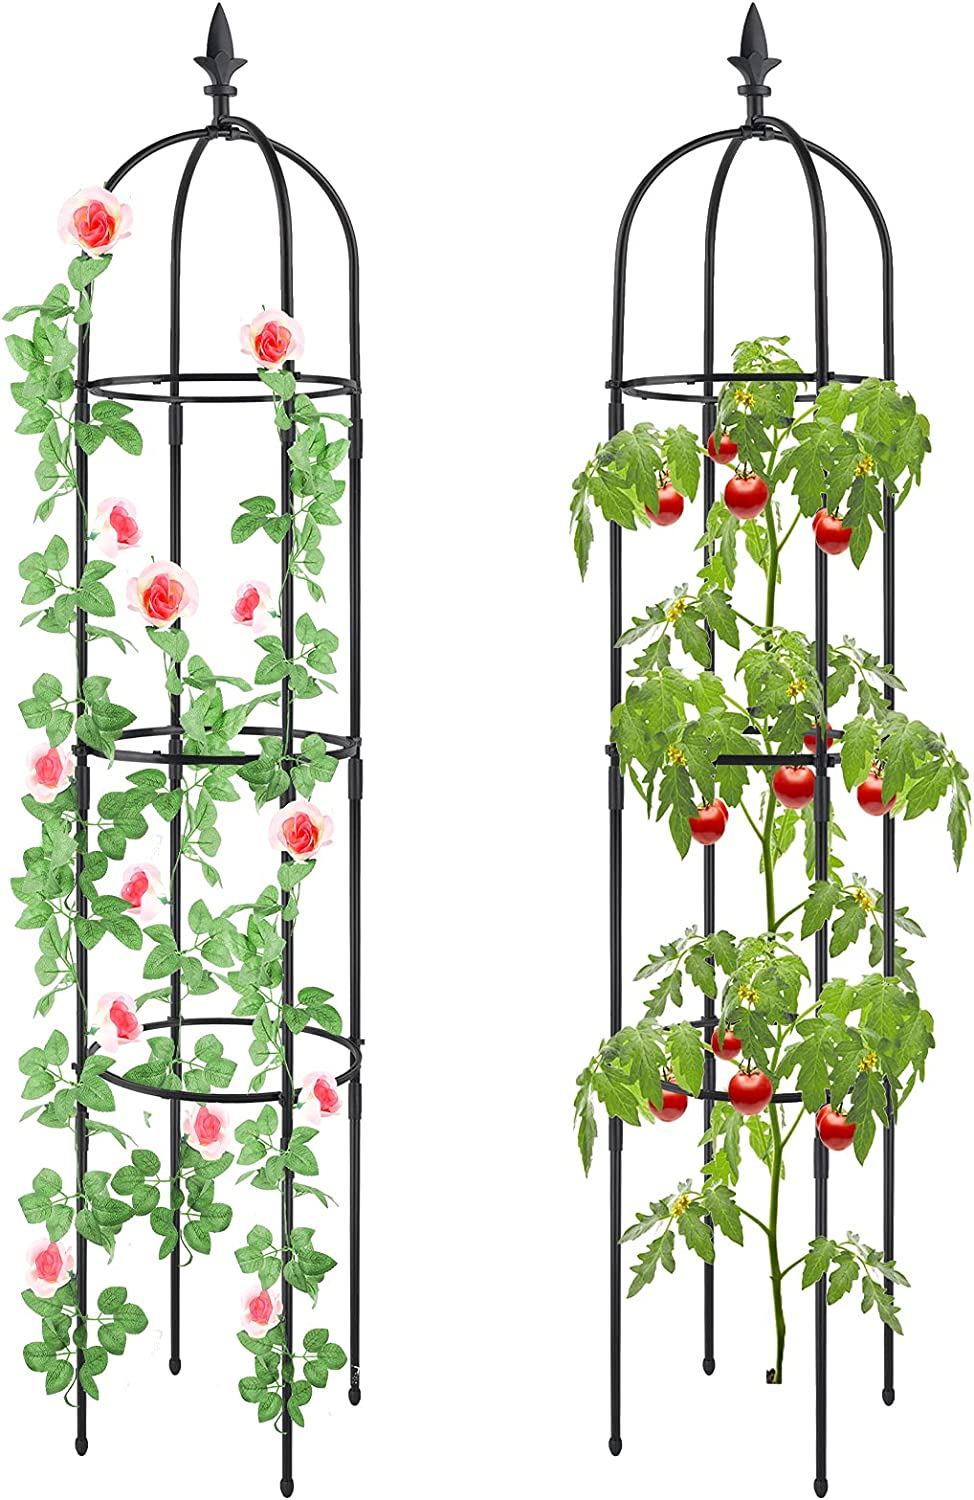 2Pcs Plant Cages and Supports, Deaunbr Tomato Cage Tall Plant Stakes Heavy Duty Garden Trellis for Indoor & Outdoor Plants, Climbing Plant, Tomatoes, Vegetables, Fruits, Flowers, Pots, Vines